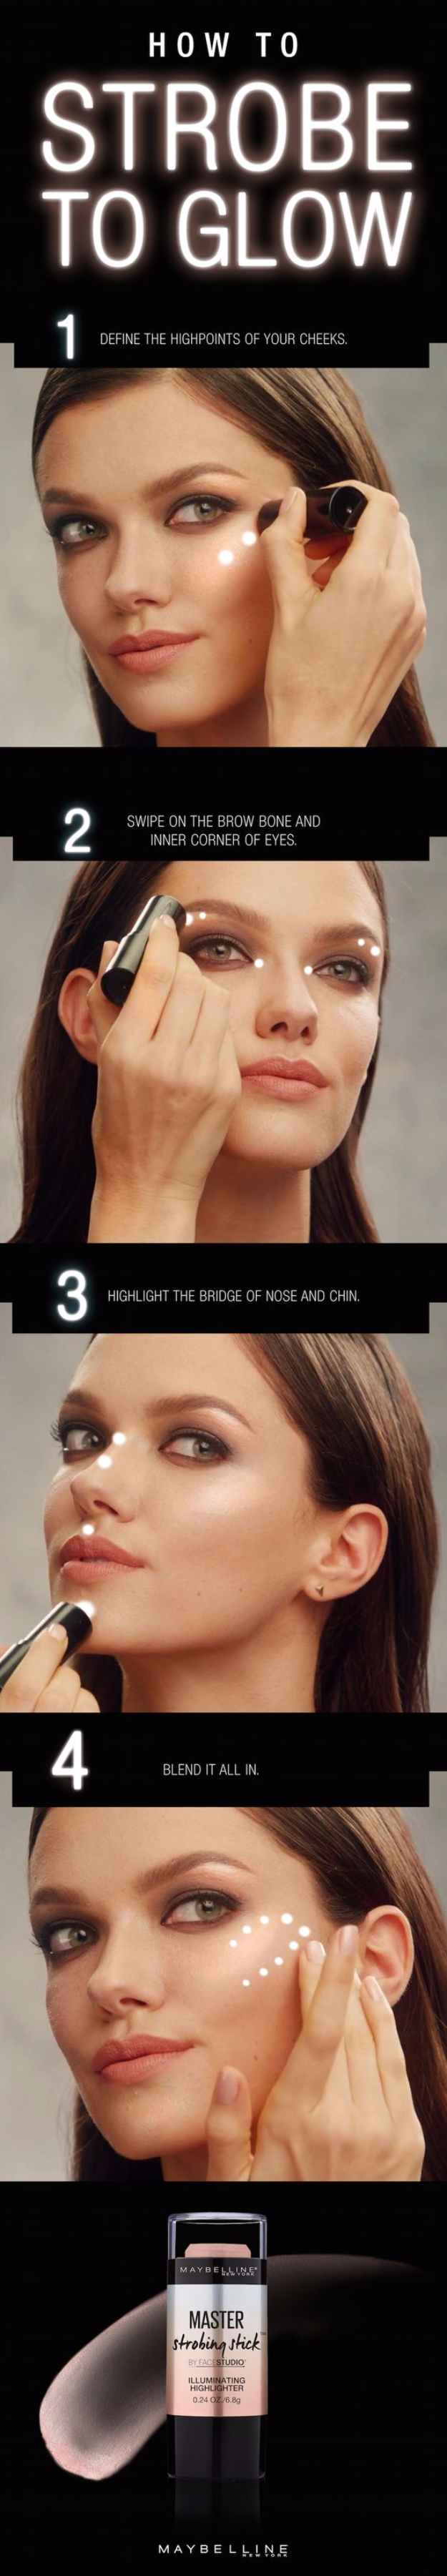 Cool DIY Makeup Hacks for Quick and Easy Beauty Ideas - Strobe To Glow - How To Fix Broken Makeup, Tips and Tricks for Mascara and Eye Liner, Lipstick and Foundation Tutorials - Fast Do It Yourself Beauty Projects for Women